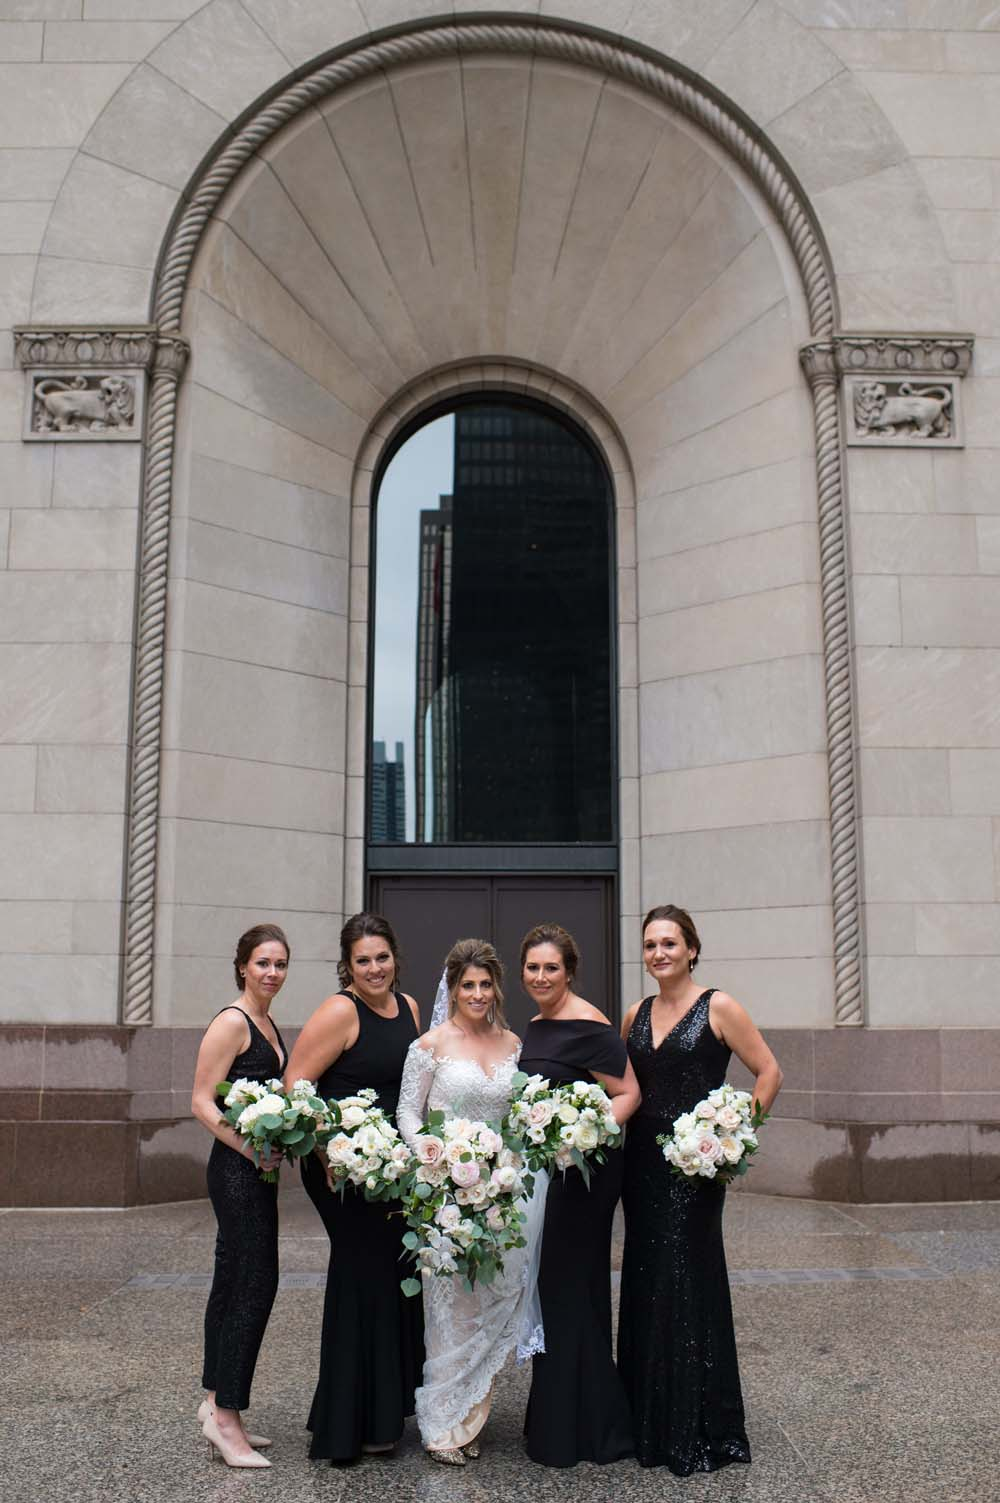 A Classic Vintage inspired Wedding at the One King West in Toronto - Bride with Bridal Party